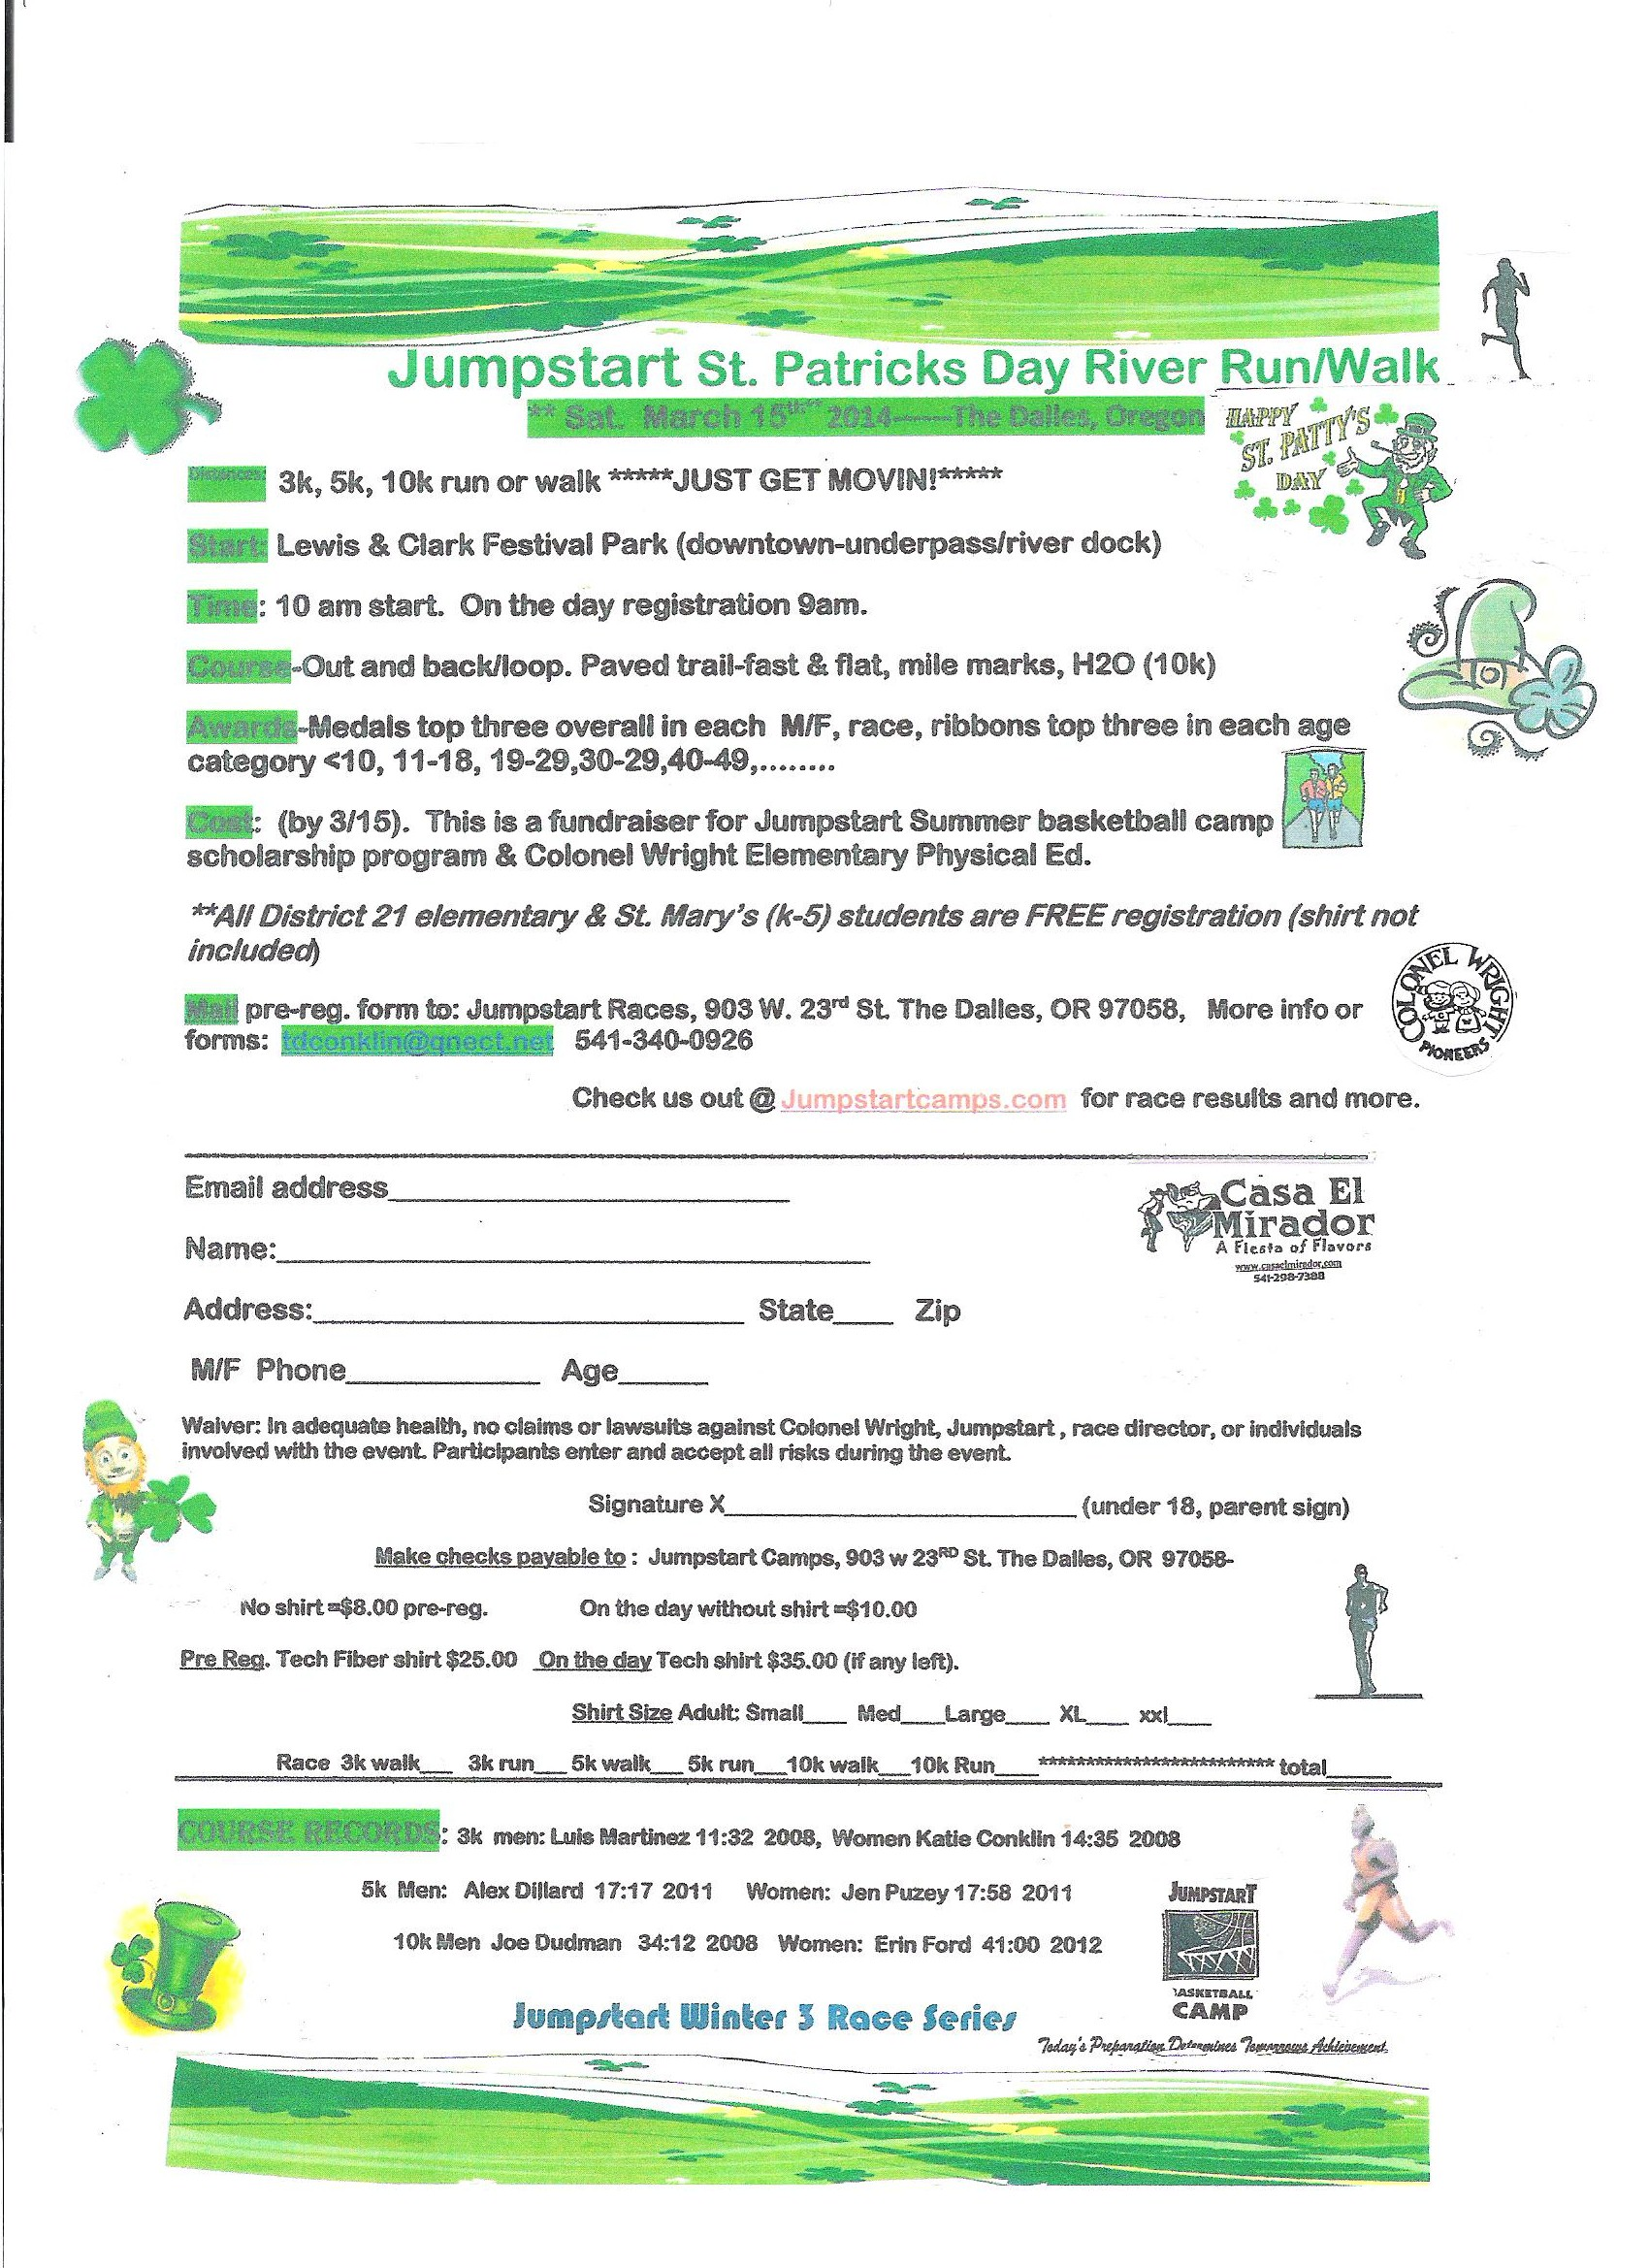 Jumpstart St. Patty's Day registration